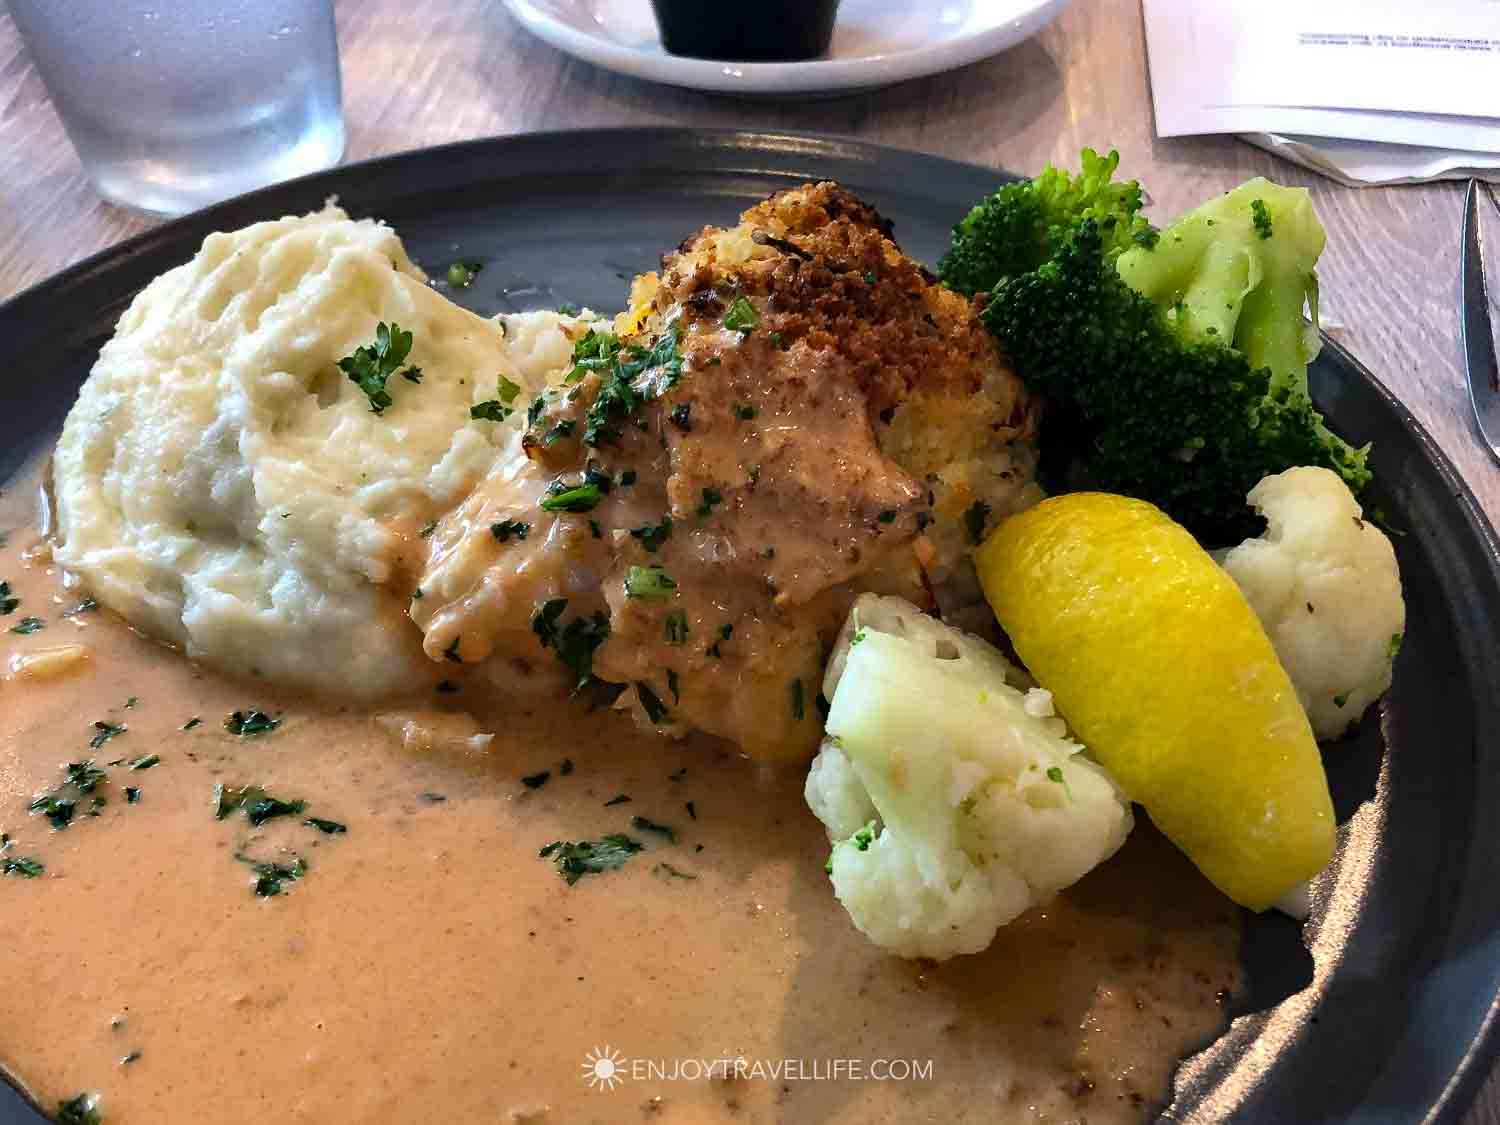 Crab Stuffed Haddock lunch at Finz in Salem Massachusetts